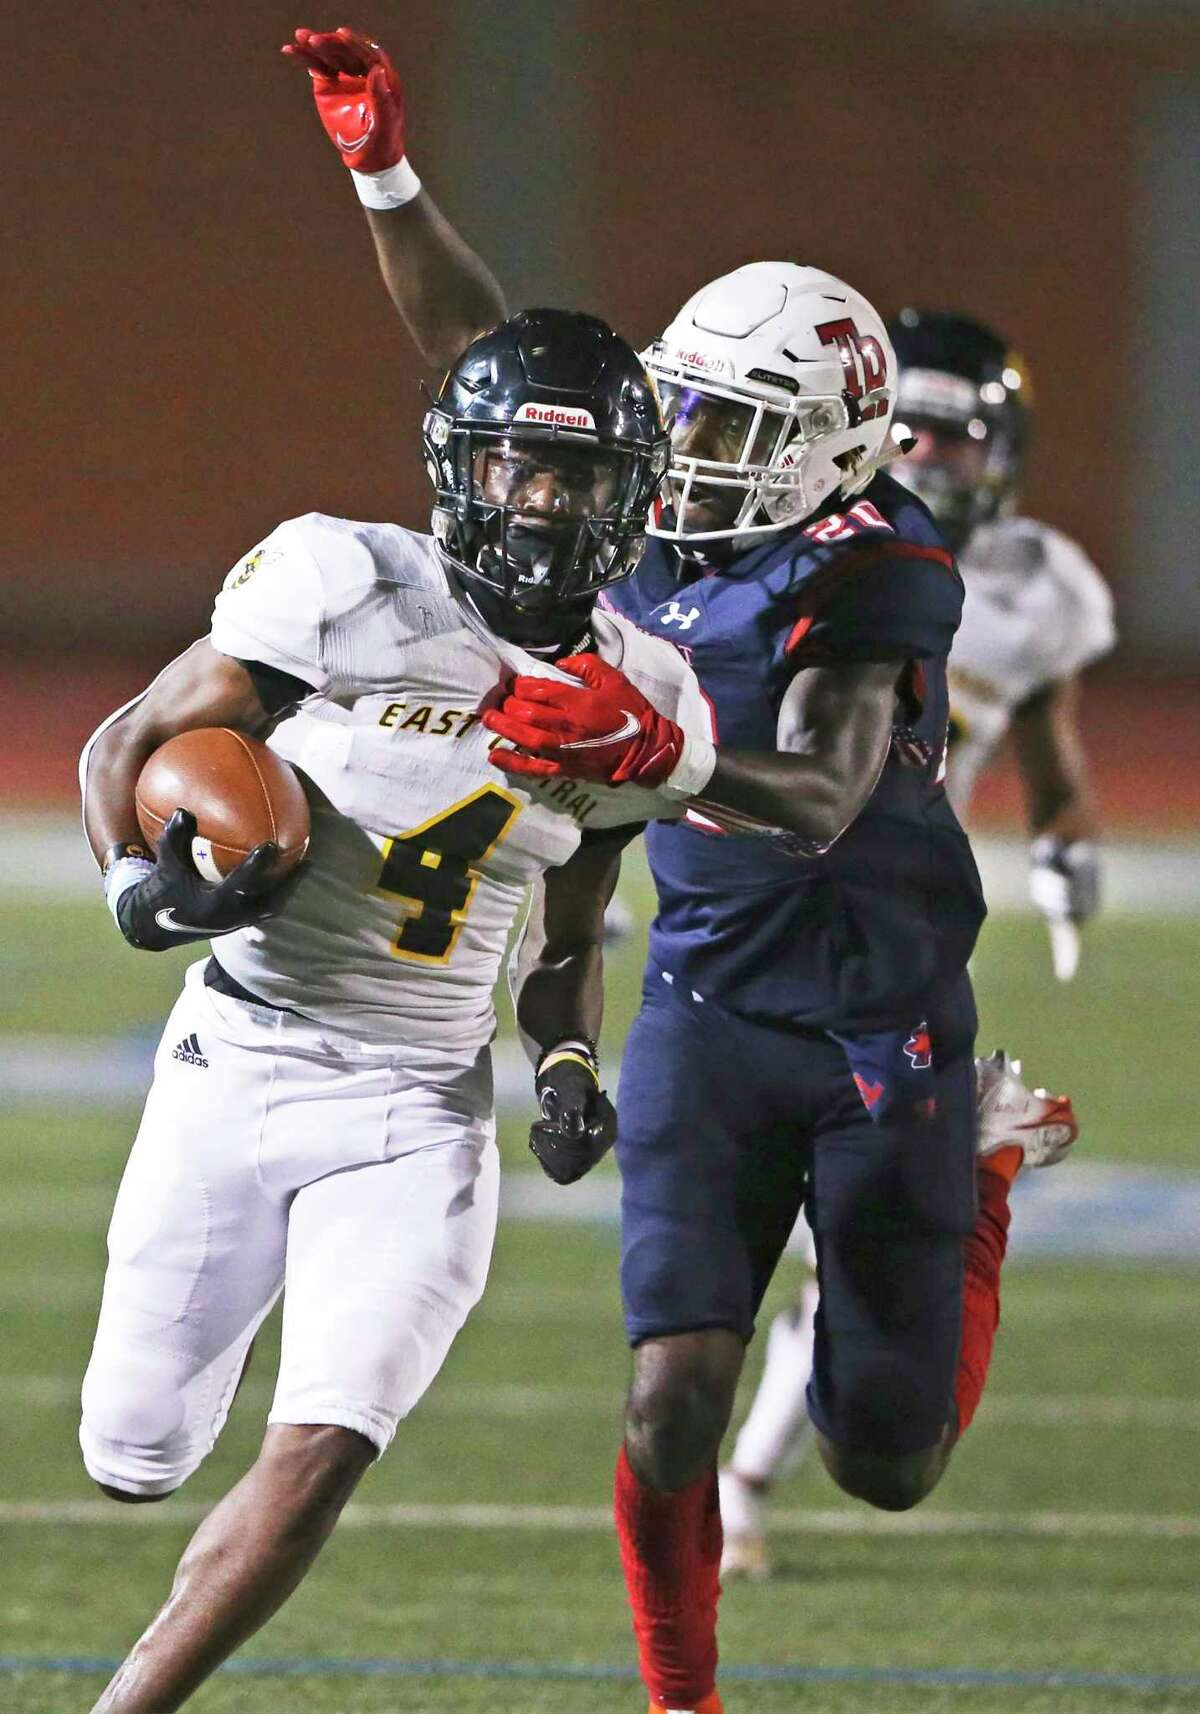 The Hornet's return man Xion LaGrant is stalked from the rear by Jalen Dears Roosevelt hosts East Central at Heroes Stadium on Oct. 2, 2020.